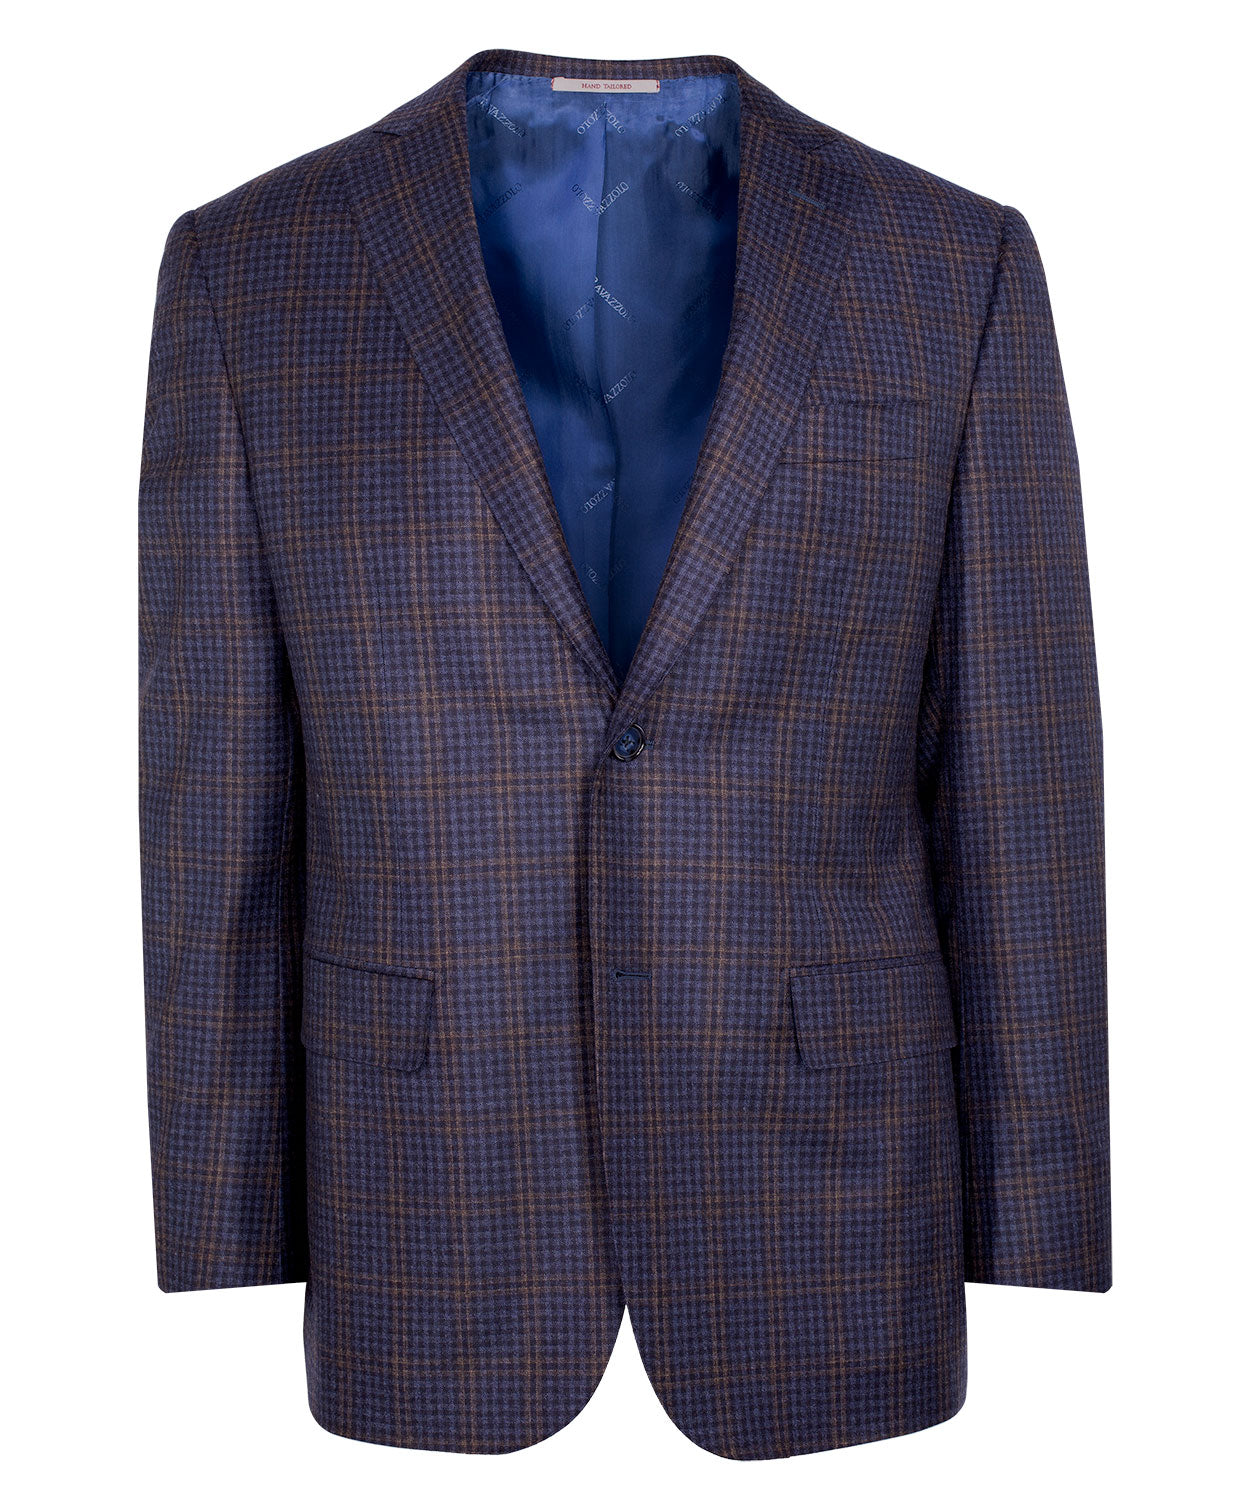 Blue/Caramel/Charcoal Lofty Blended Check Jacket